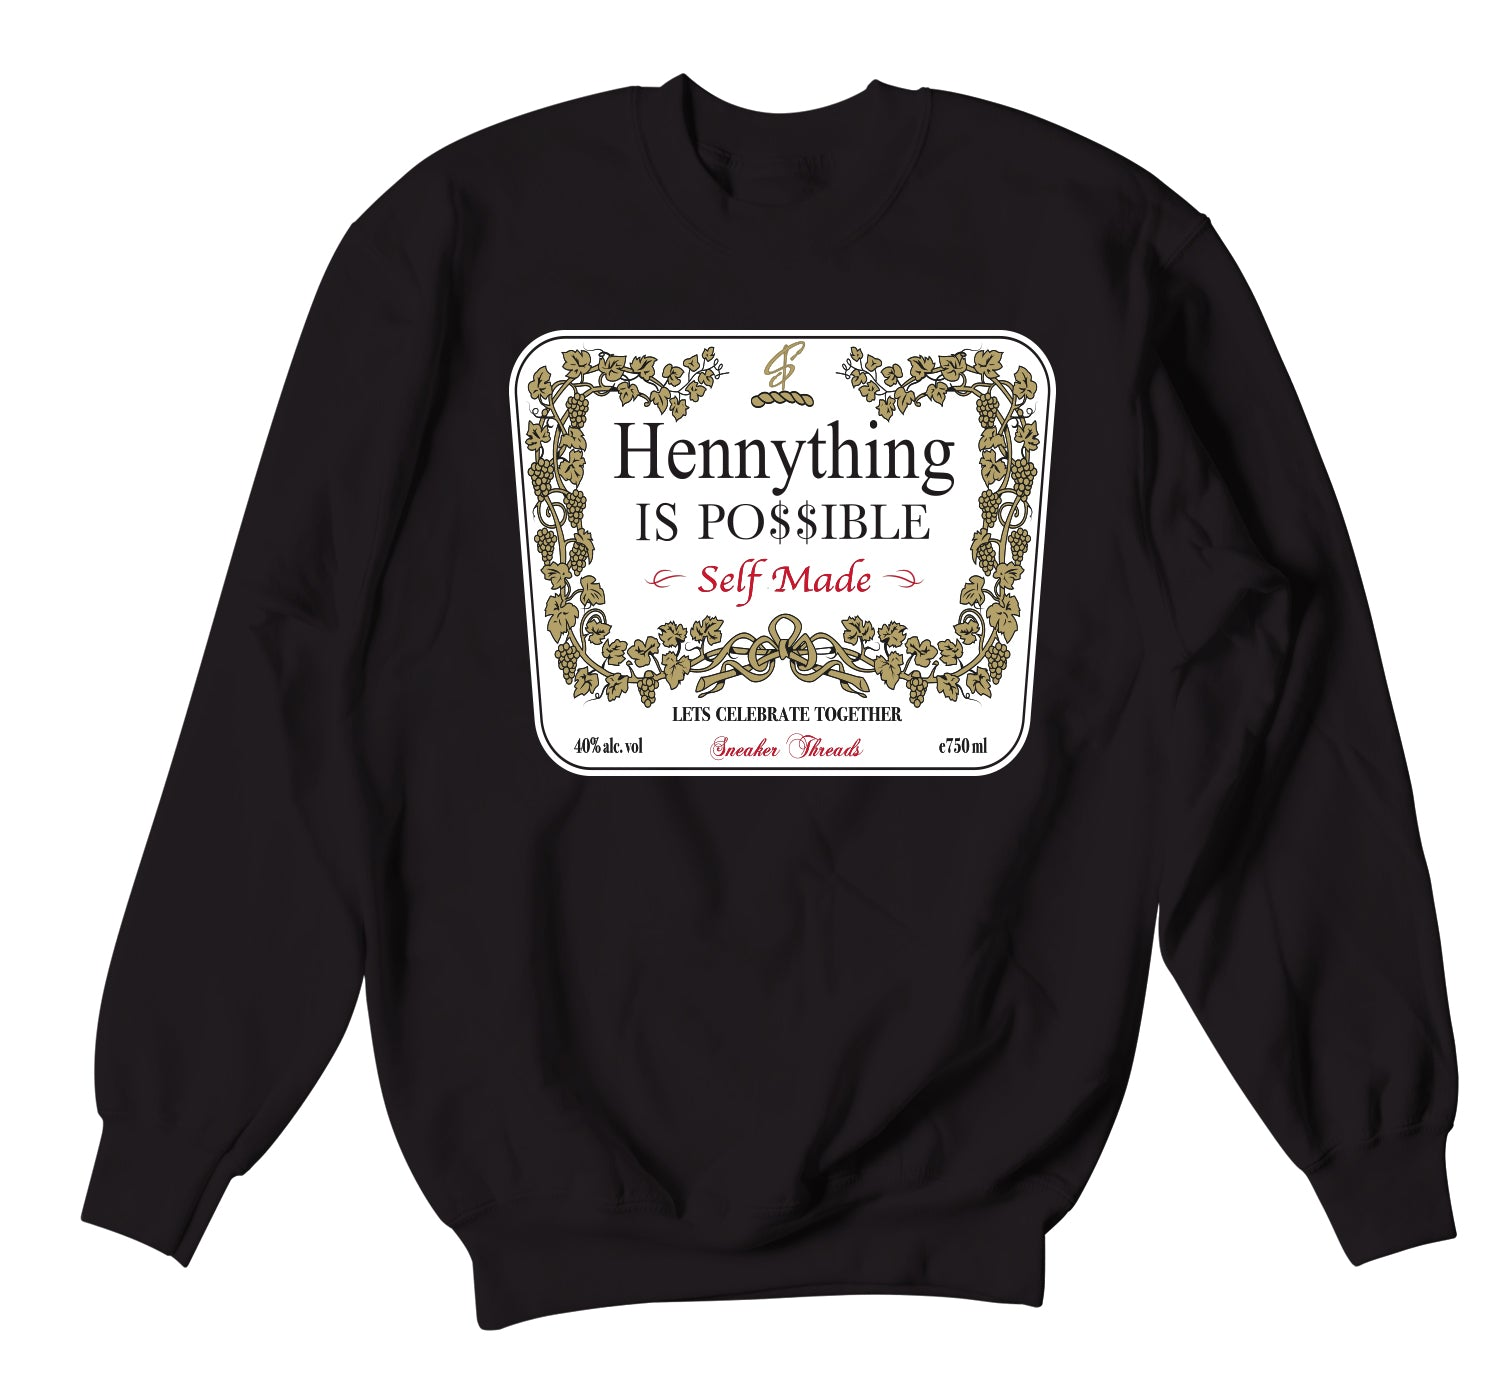 Jordan 12 Super Bowl Sweater - Hennything - Black